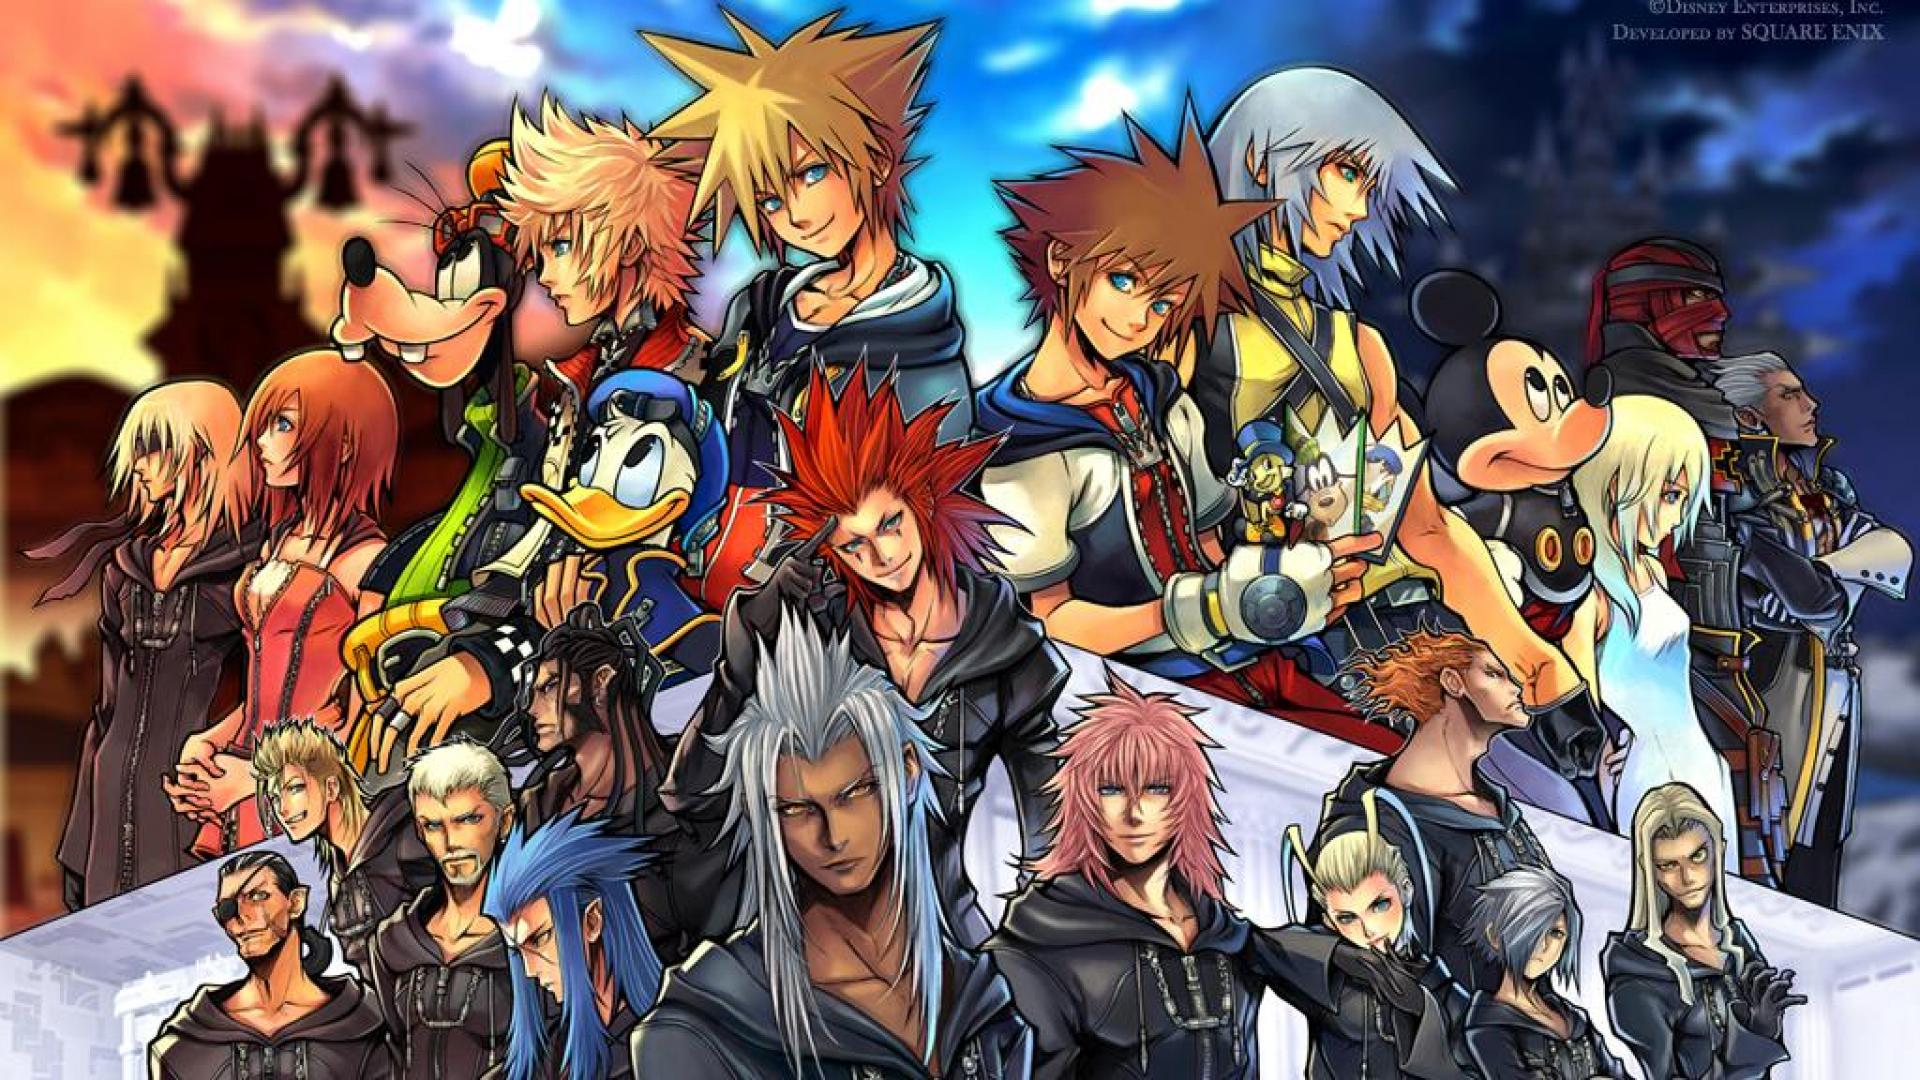 Kingdom Hearts 2 Wallpaper